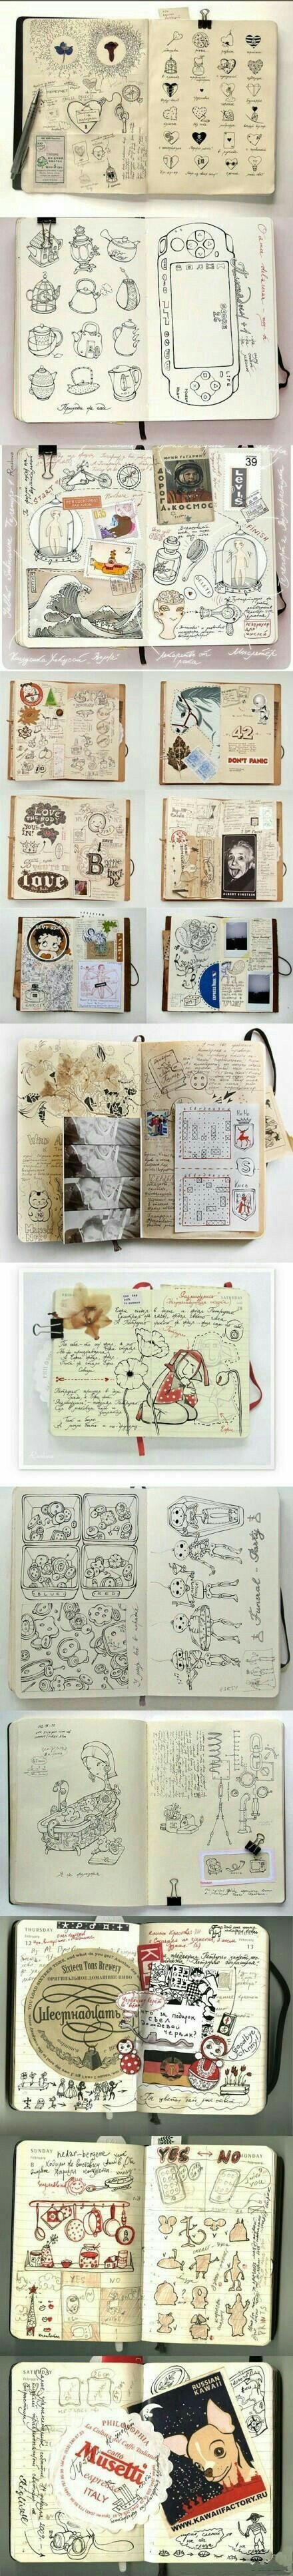 || Sketches in journal || I love the little sketches here. I will definitely use these as little add-ins to each page